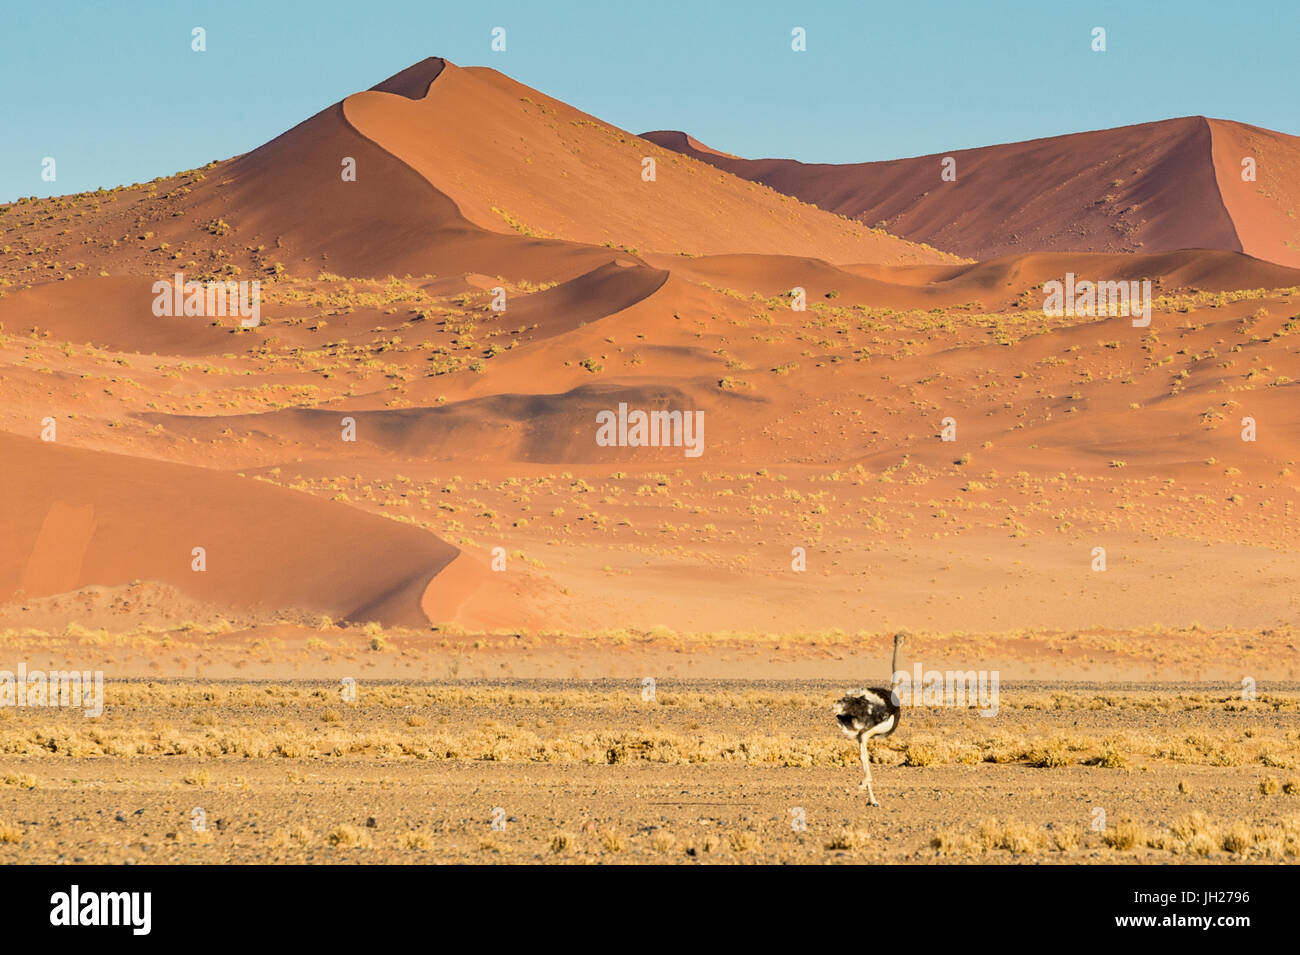 Ostrich wandering in front of a giant sand dune, Sossusvlei, Namib-Naukluft National Park, Namibia, Africa - Stock Image